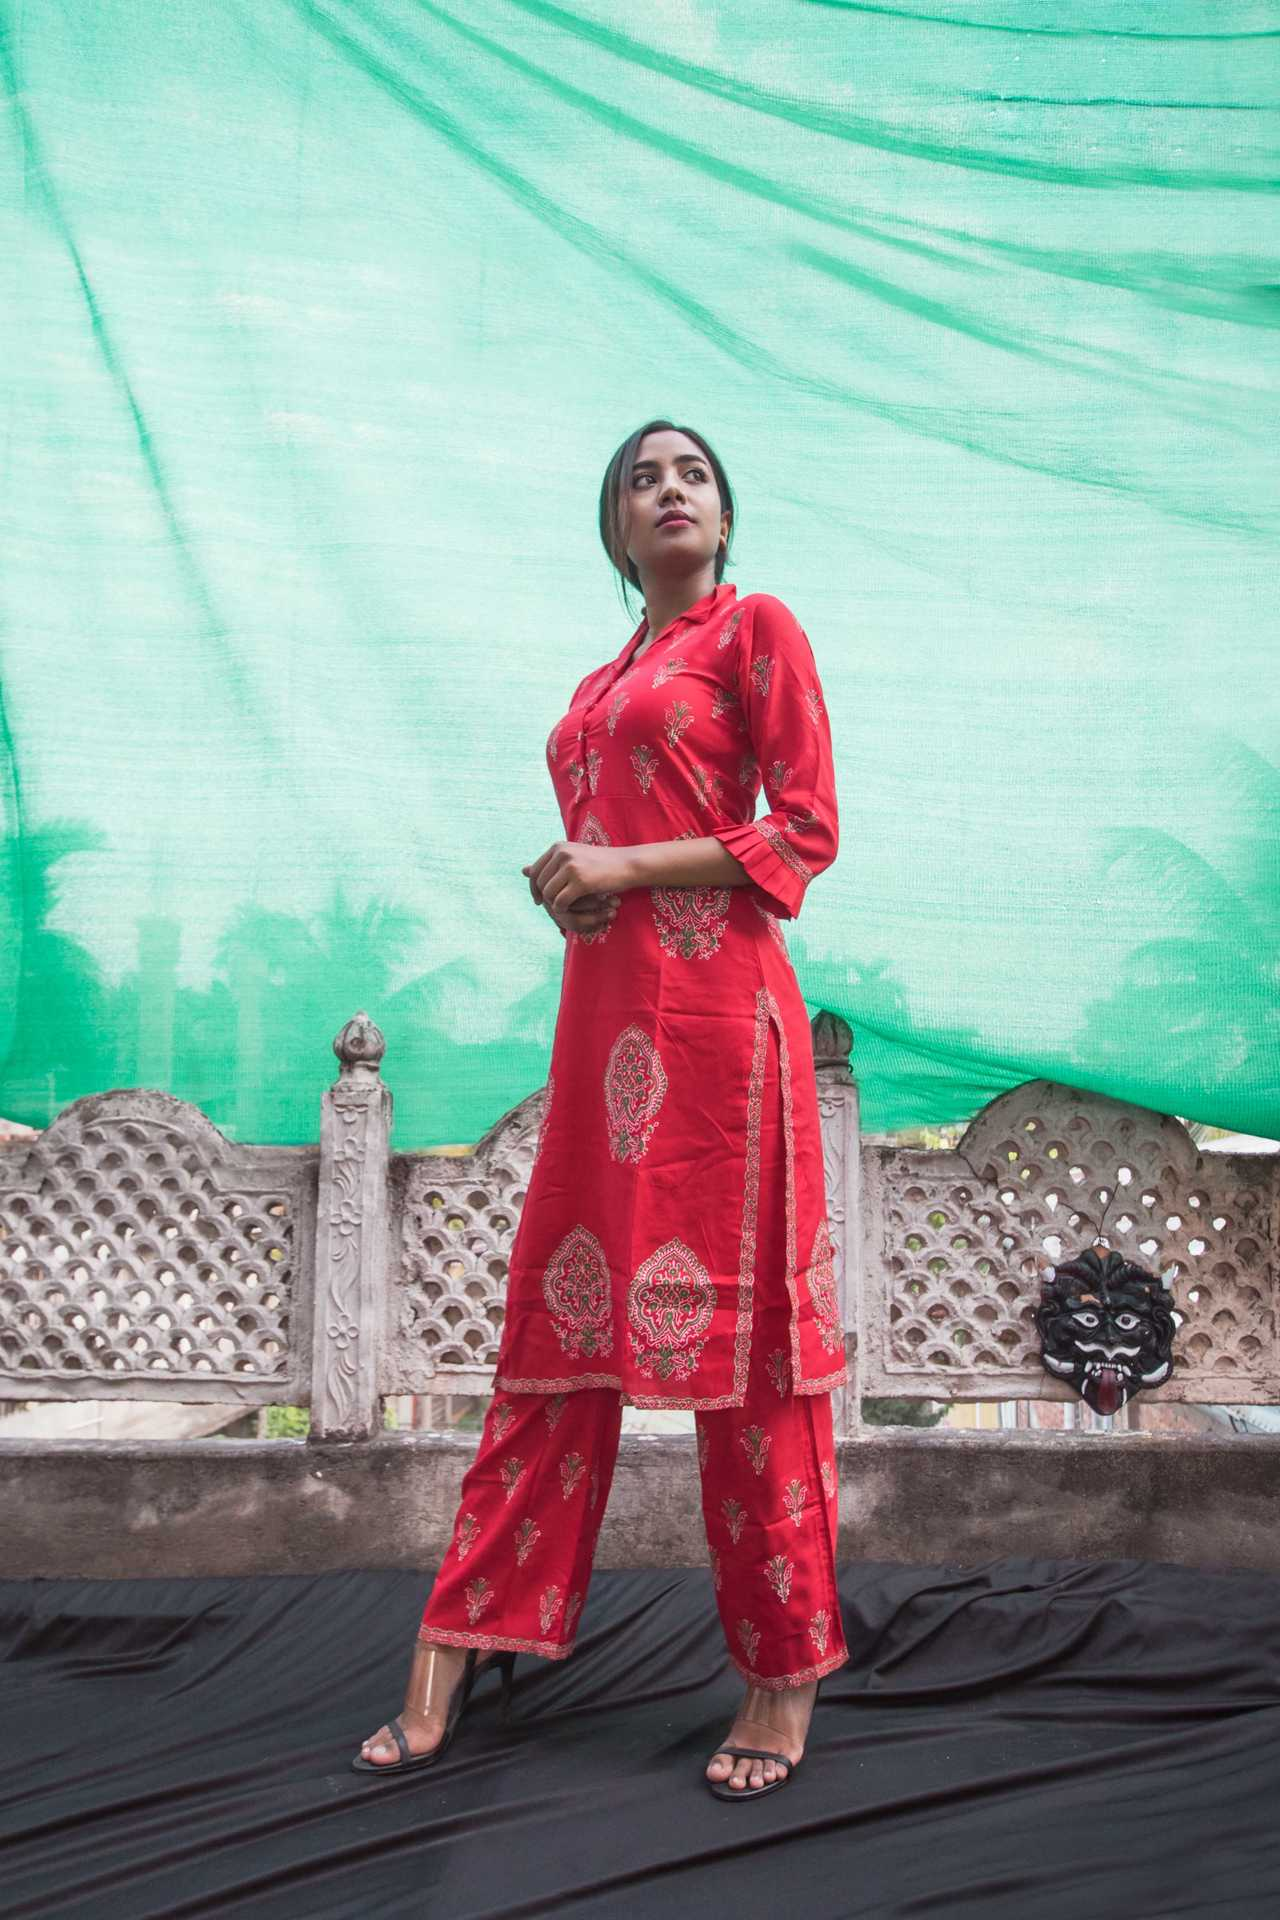 Going Ethnic is a Pretty Feeling - Diwali ft. Jharonka image